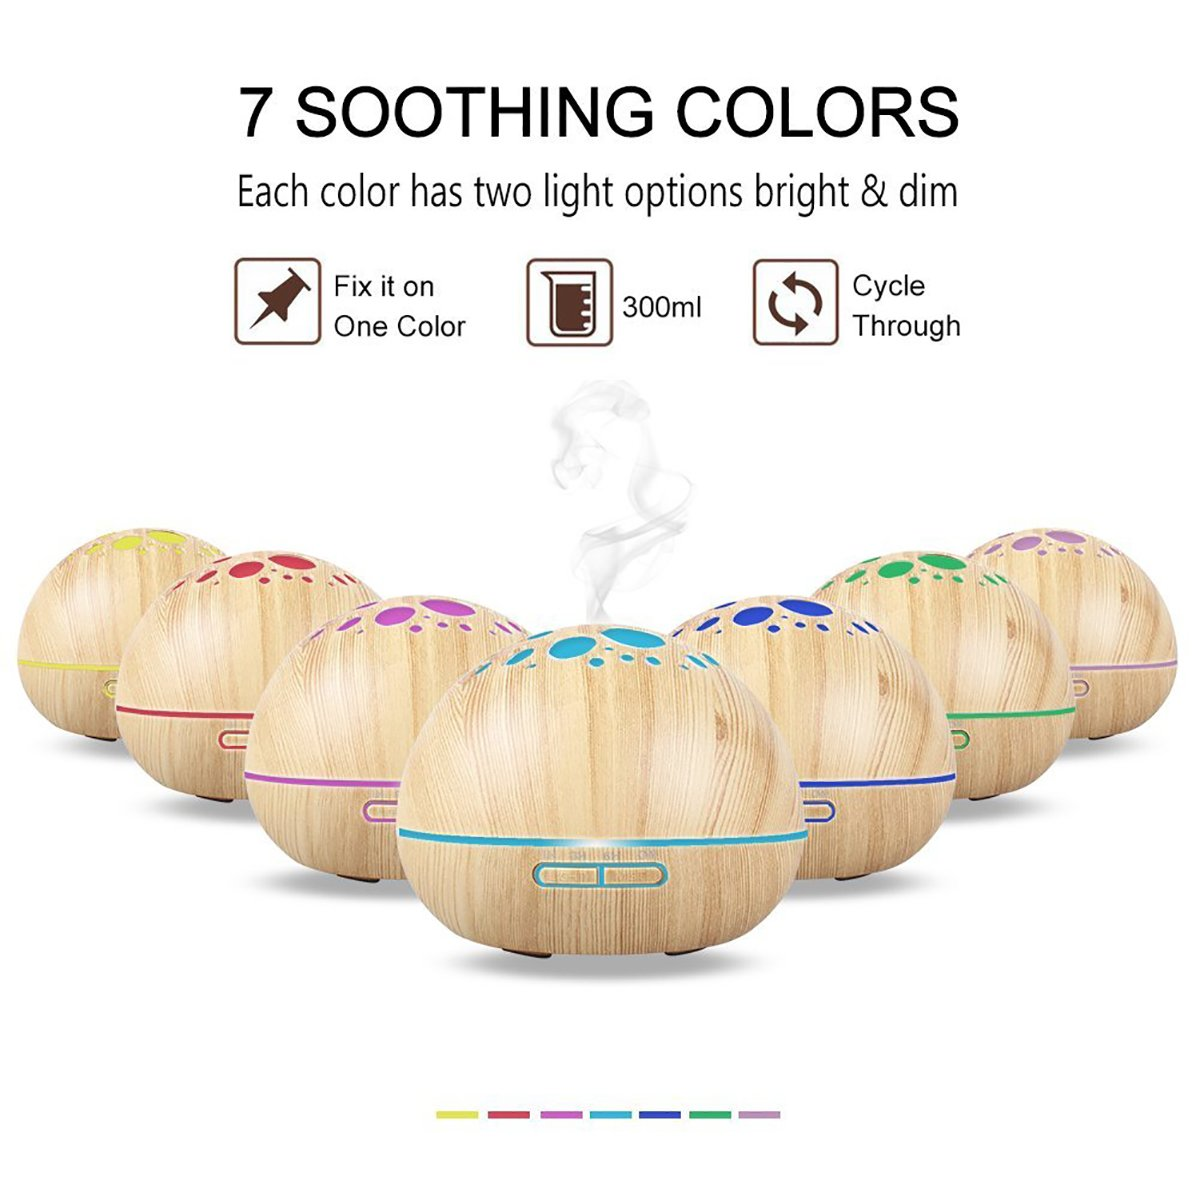 Aroma Essential Oil Diffuser Ultrasonic Cool Mist Humidifier with Adjustable Mist Mode 7 Color LED Lights and Waterless Auto Power-off for Office Home Study Yoga Spa 300ml (Light Wood) by RSL (Image #2)